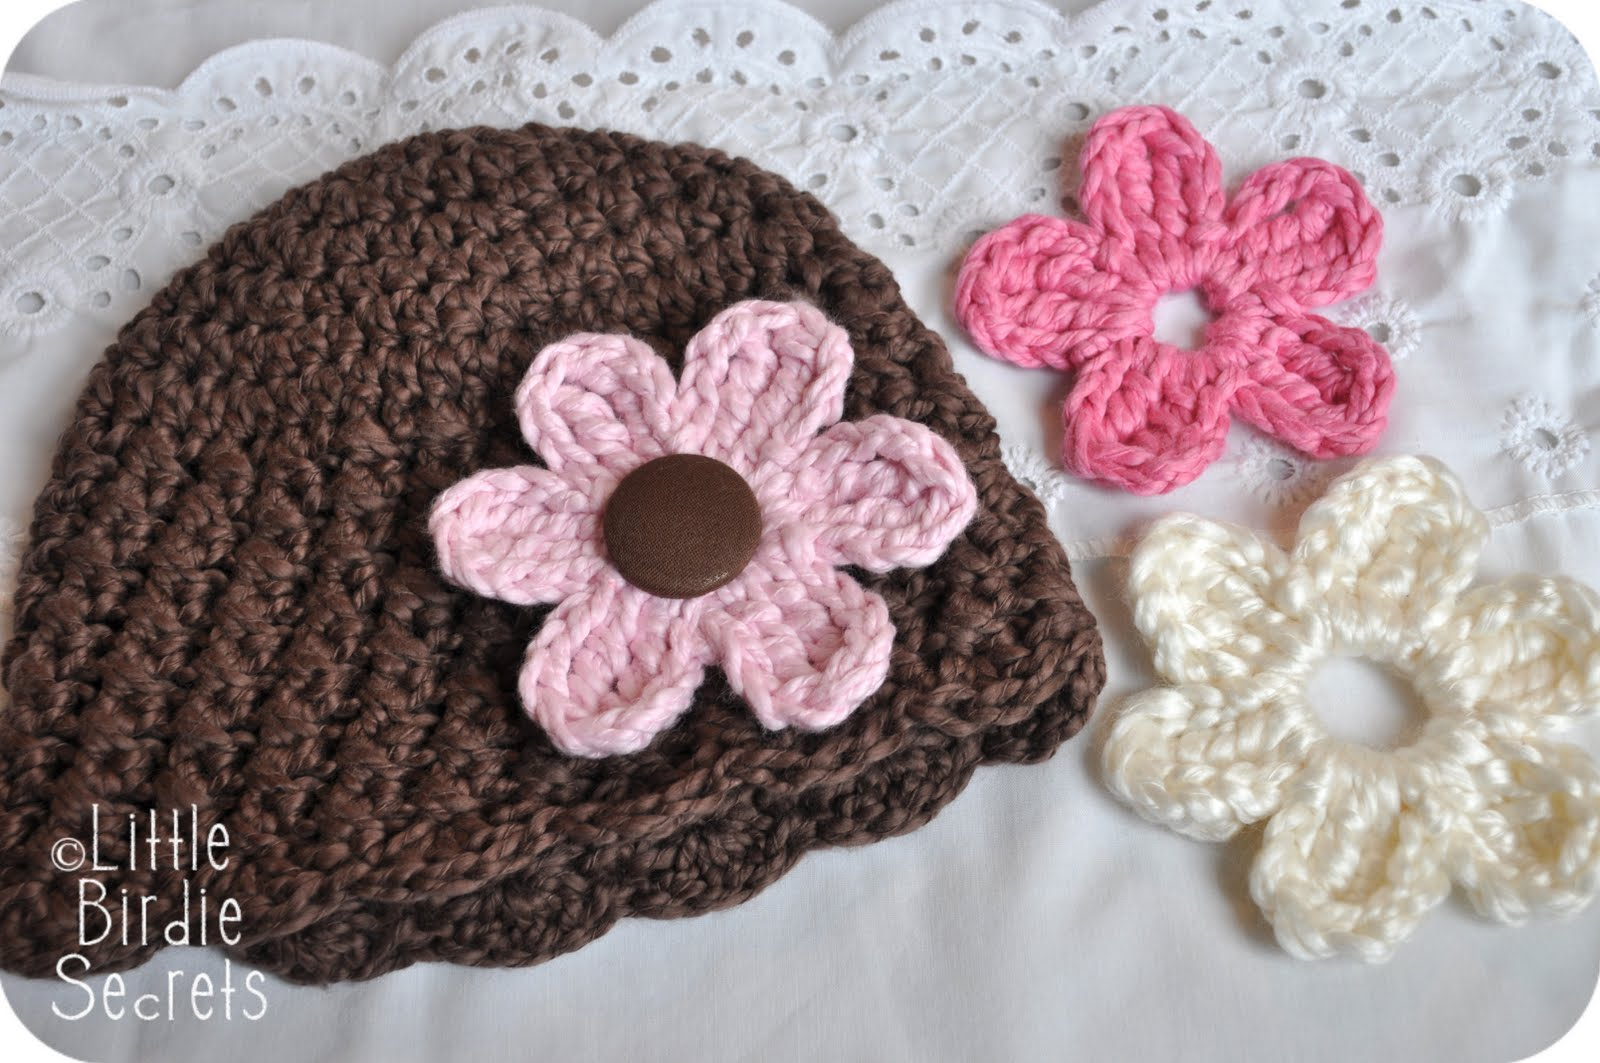 Make Crochet Flower Pattern : new baby hat and bootie patterns in the shop {plus a free ...